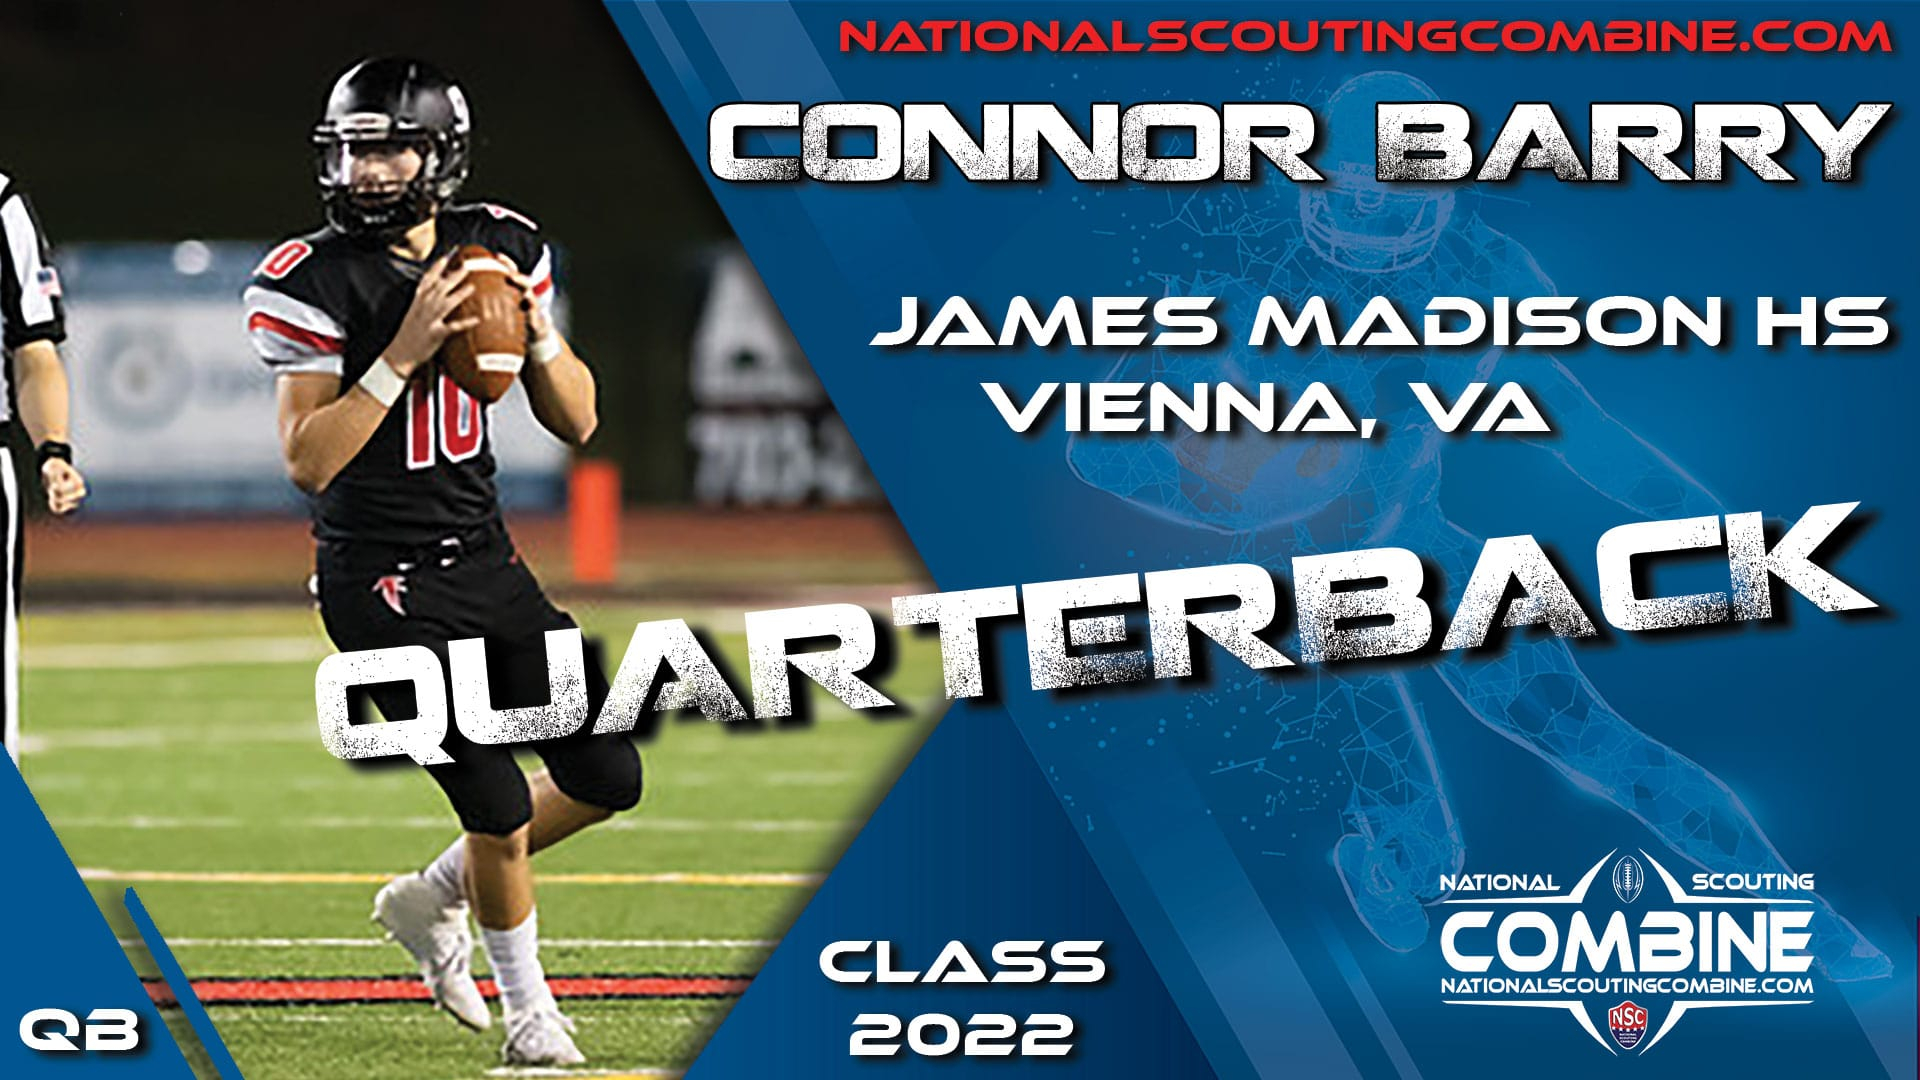 National Scouting Combine Prospect Connor Barry, QB from James Madison high school